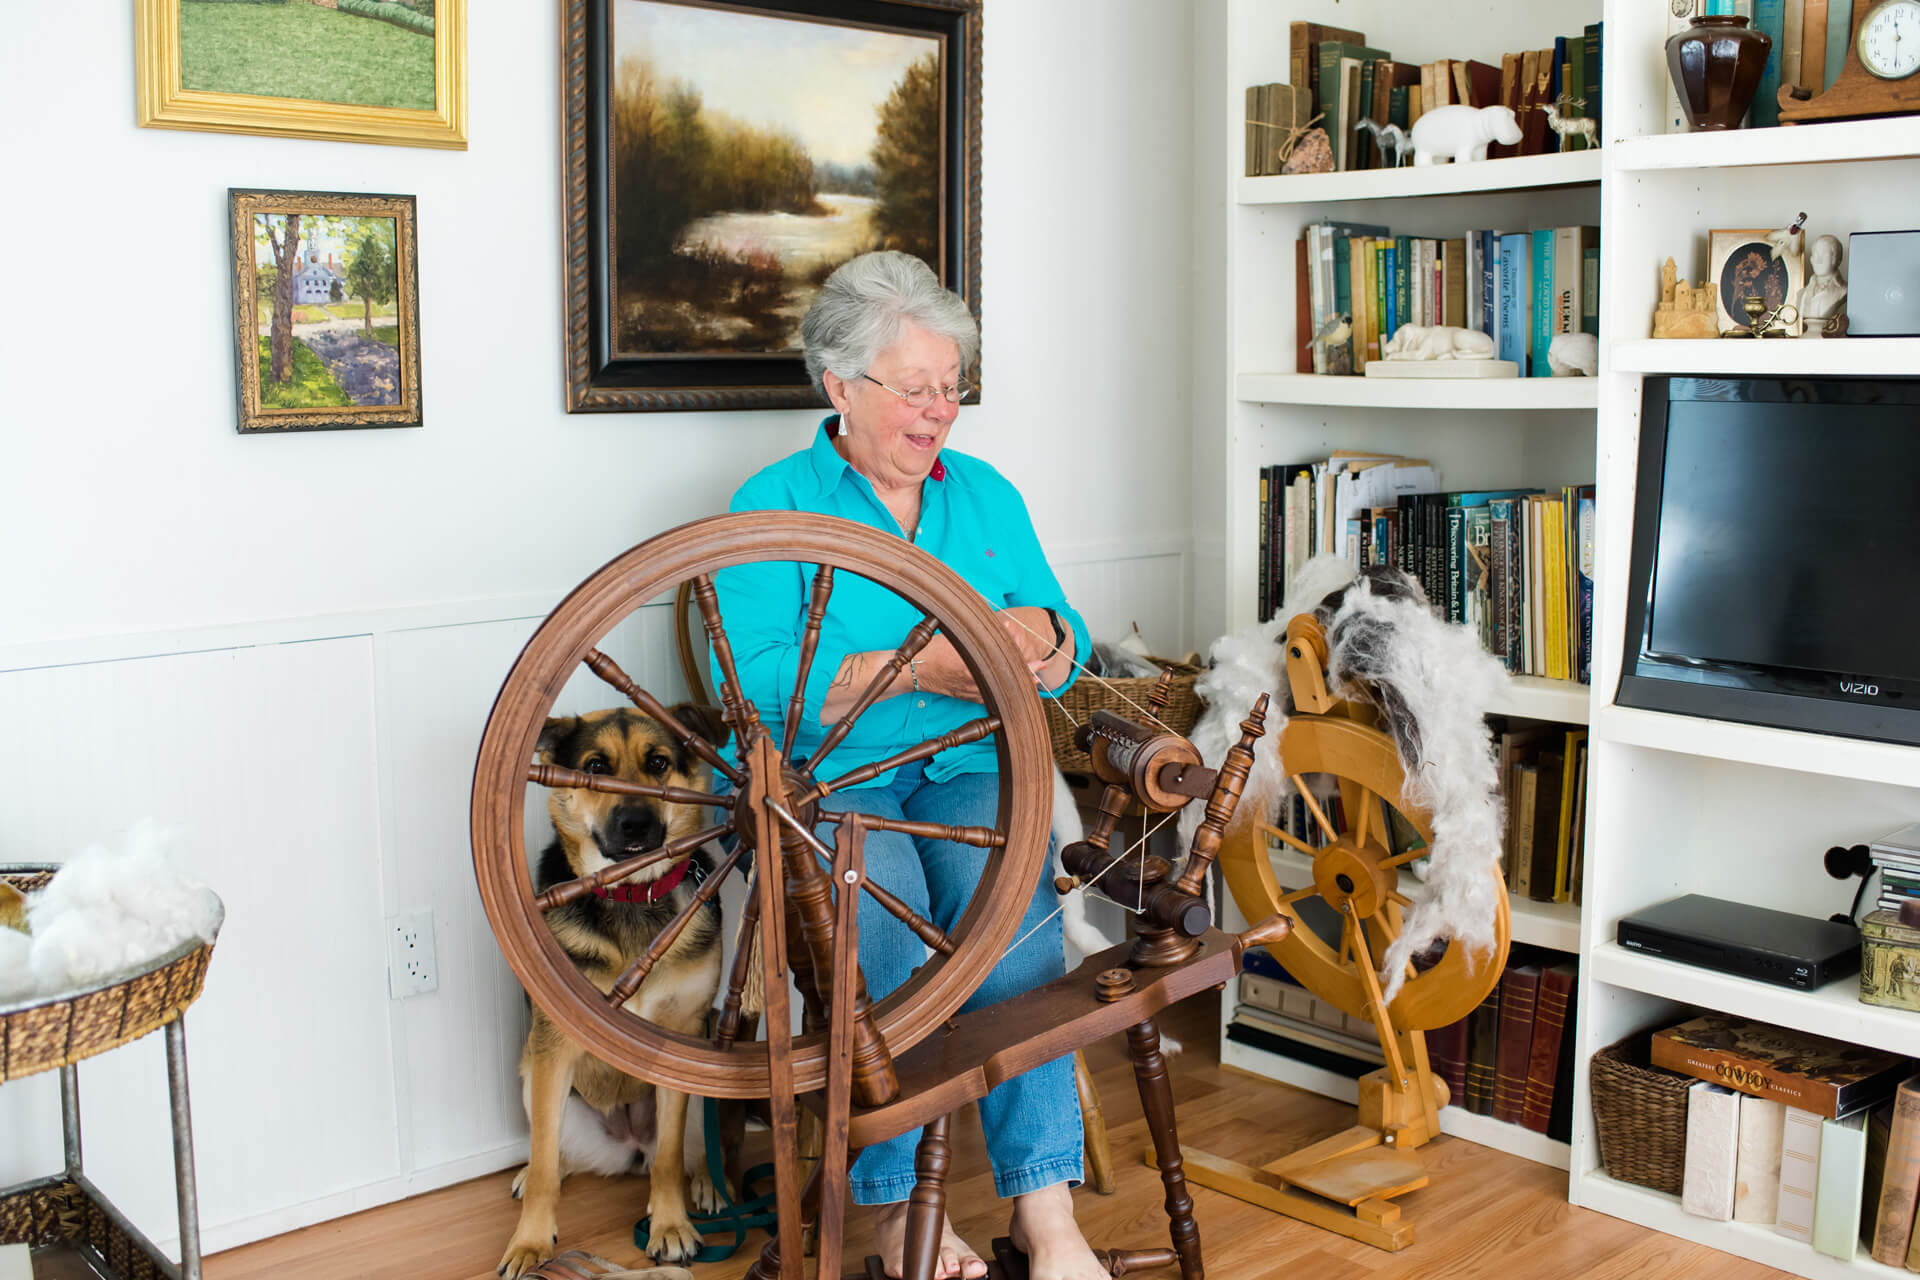 Woman spins yarn in her living room as her dog sits close by